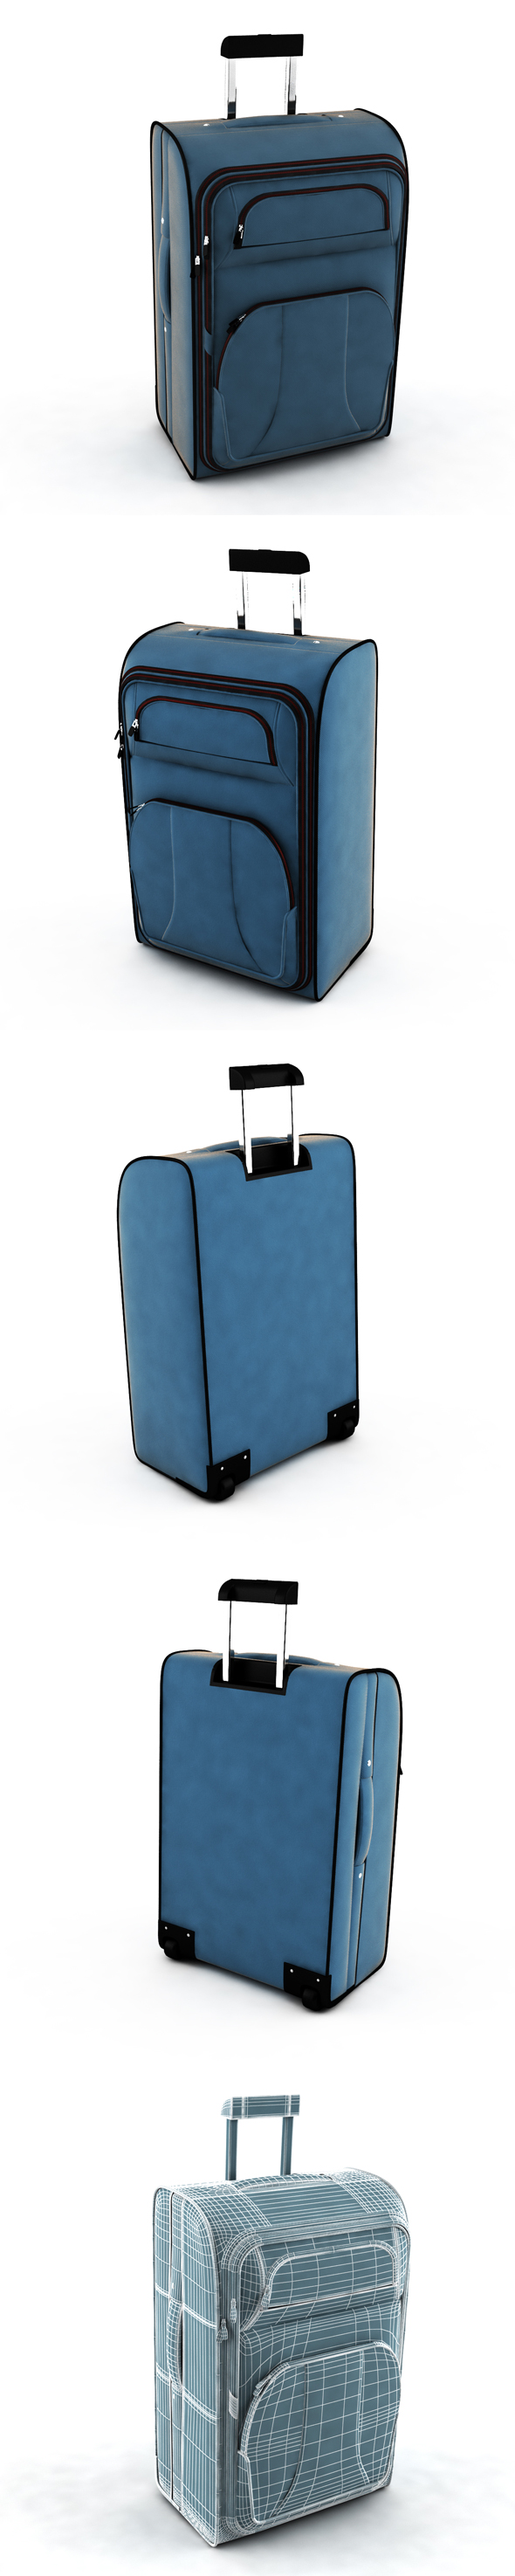 Suitcase travel - 3DOcean Item for Sale